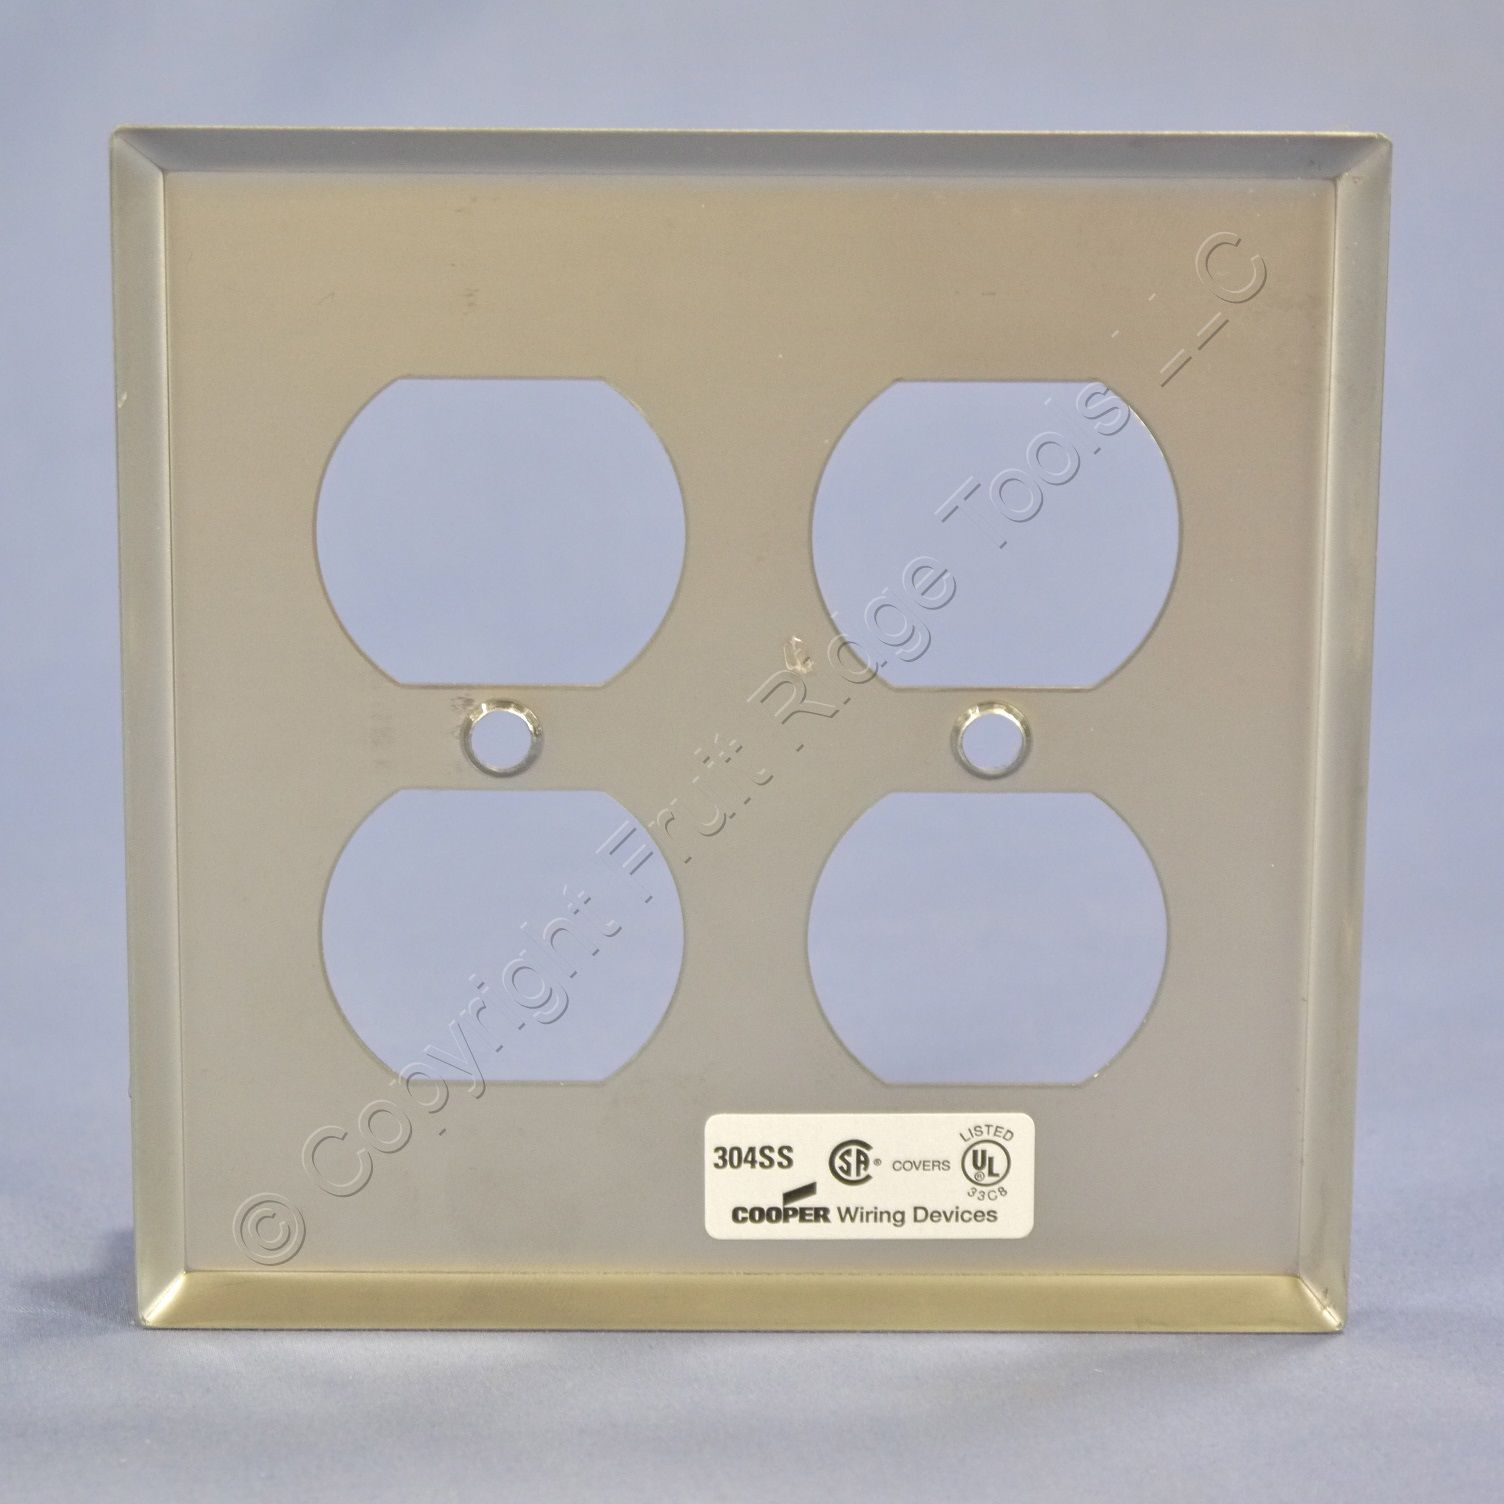 Cooper 93102 Stainless Steel Wallplate 2g Double Duplex Receptacle Wiring Outlet Picture 2 Of 3